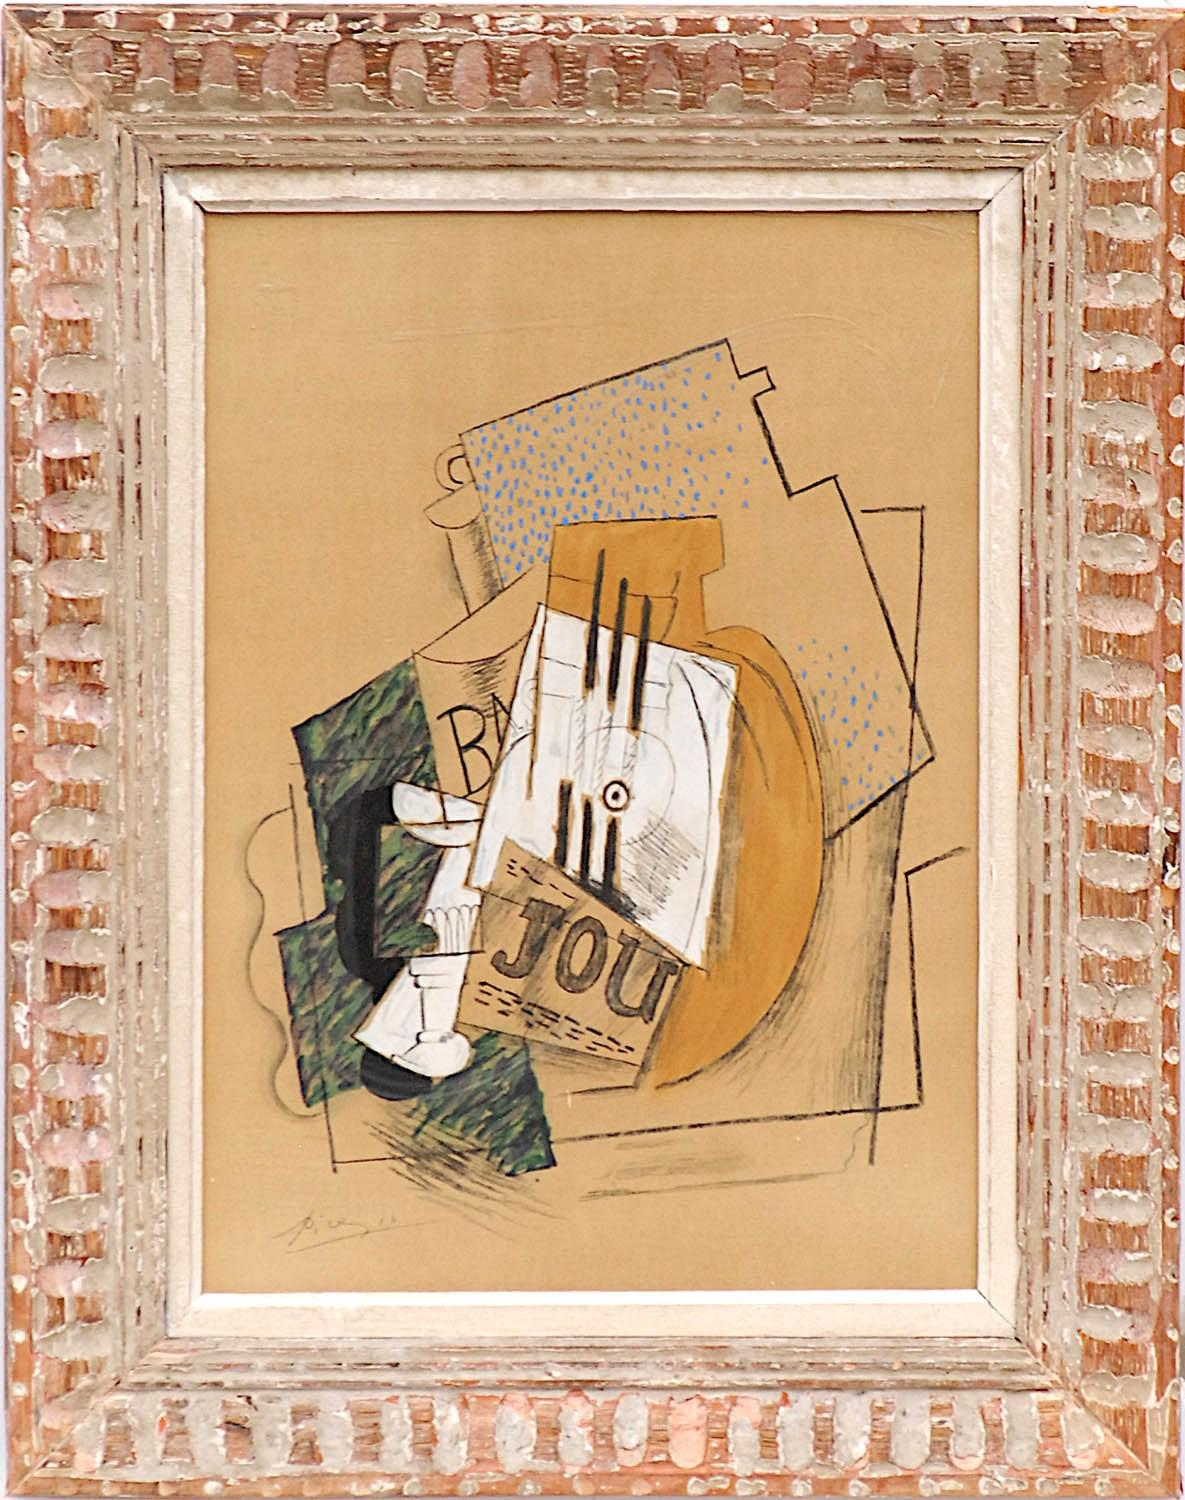 PABLO PICASSO 'Nature Morte', signed in the plate, pochoir on wove paper, edition 1000, printed by